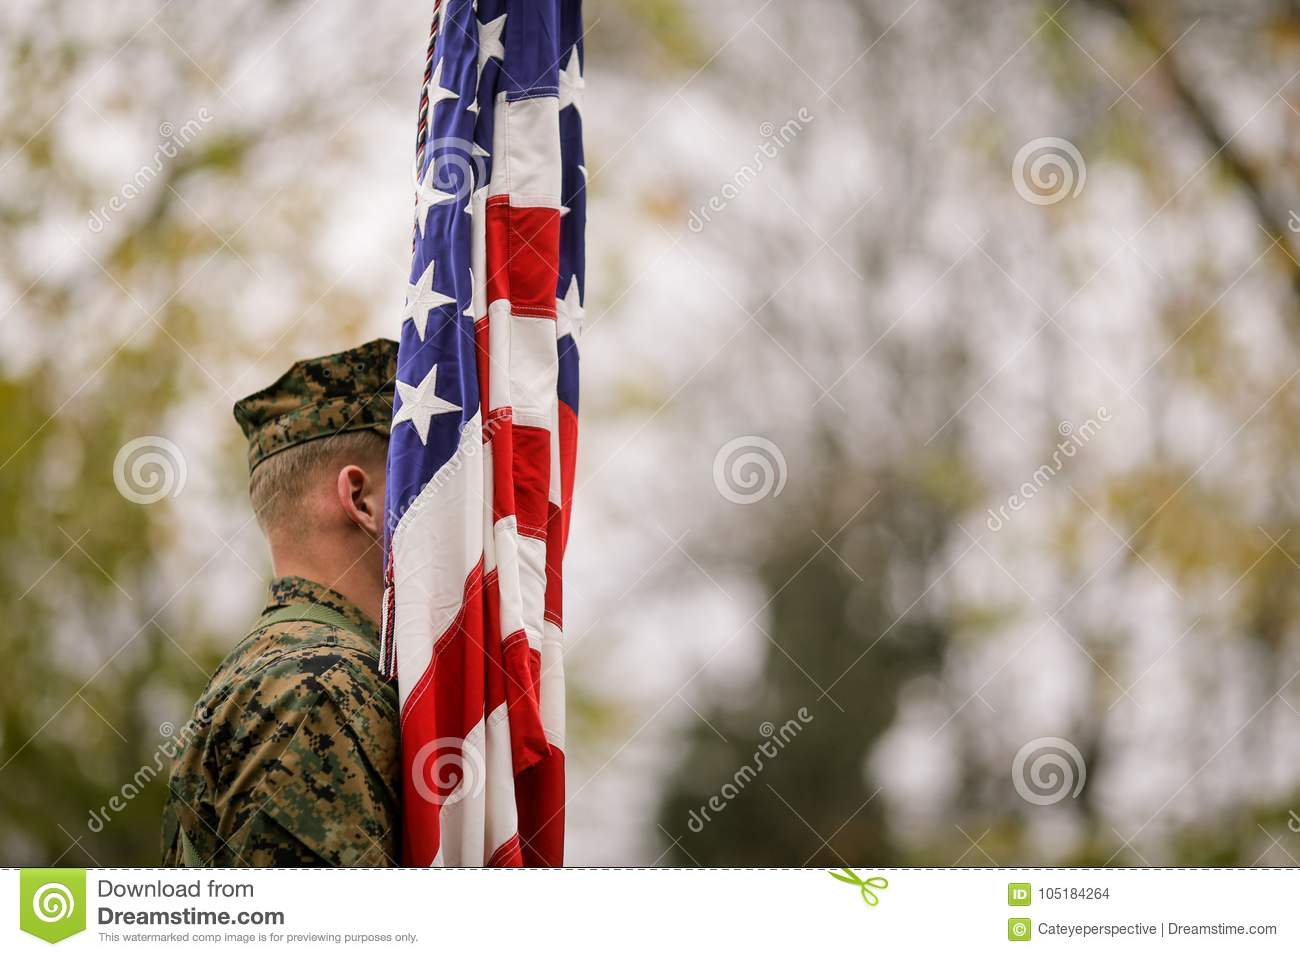 US Army soldier with US flag